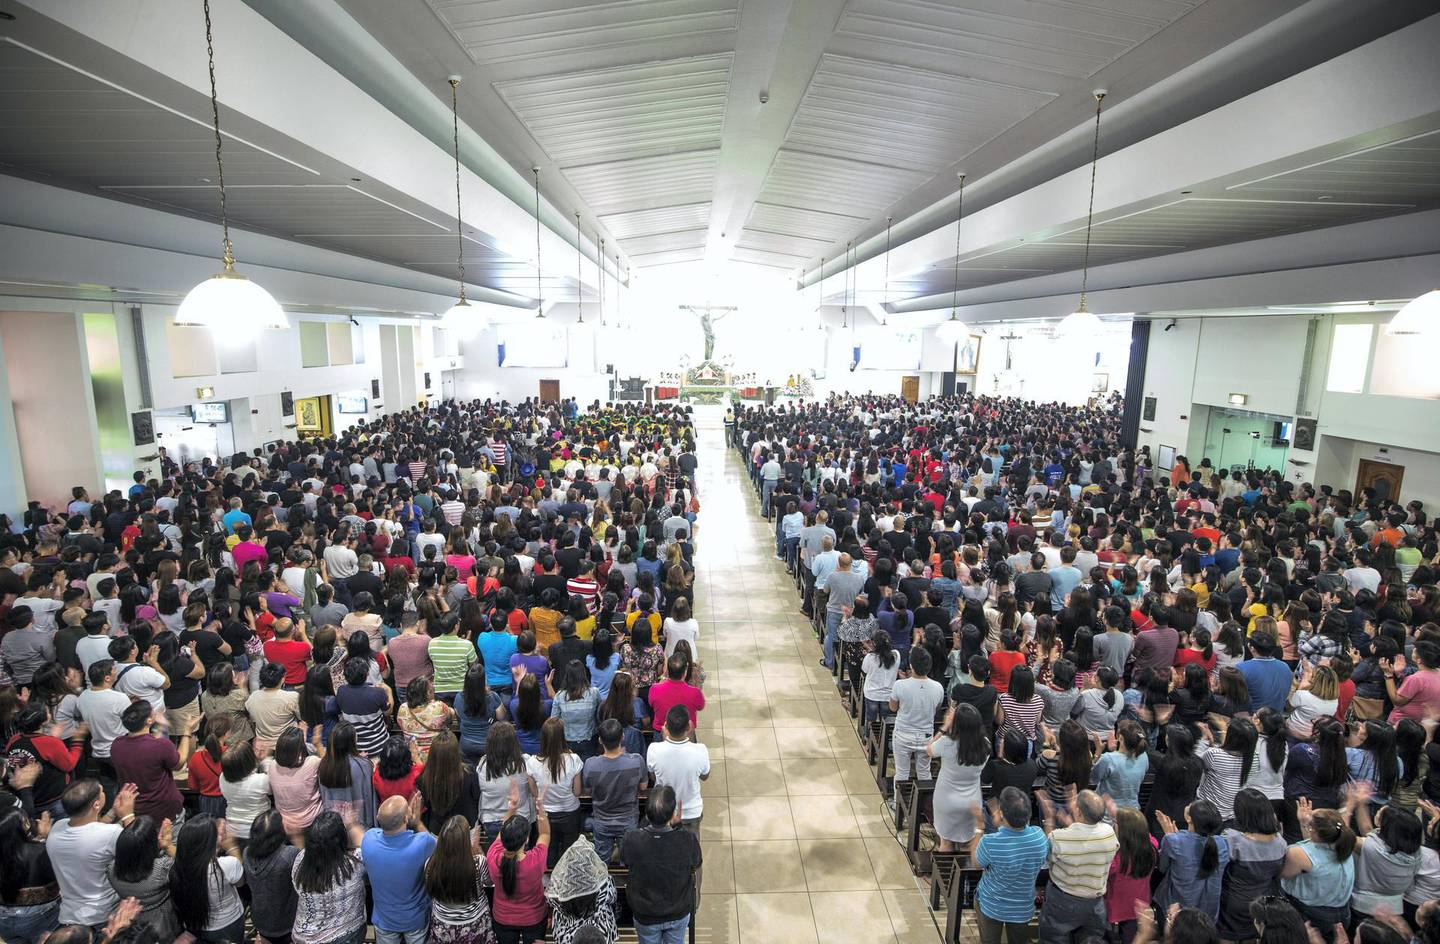 DUBAI, UNITED ARAB EMIRATES - A Filipino mass being held at St. Mary's Catholic Church to celebrate the feast of Sto. Nino.  Leslie Pableo for The National